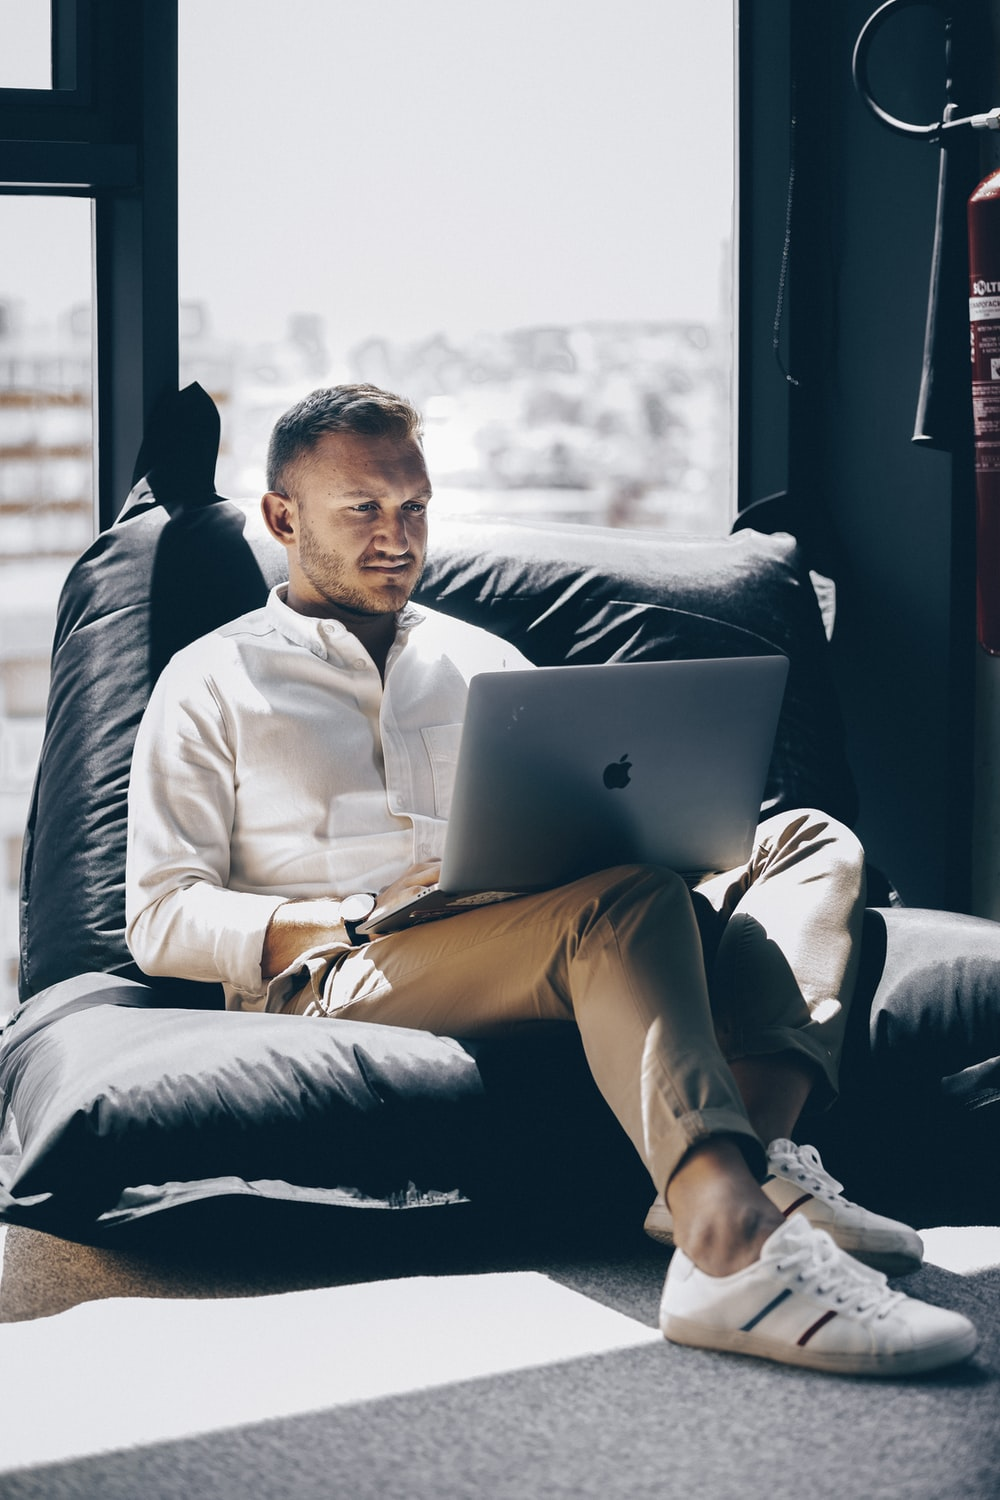 man sitting on bed chair while using silver MacBook near window during daytime